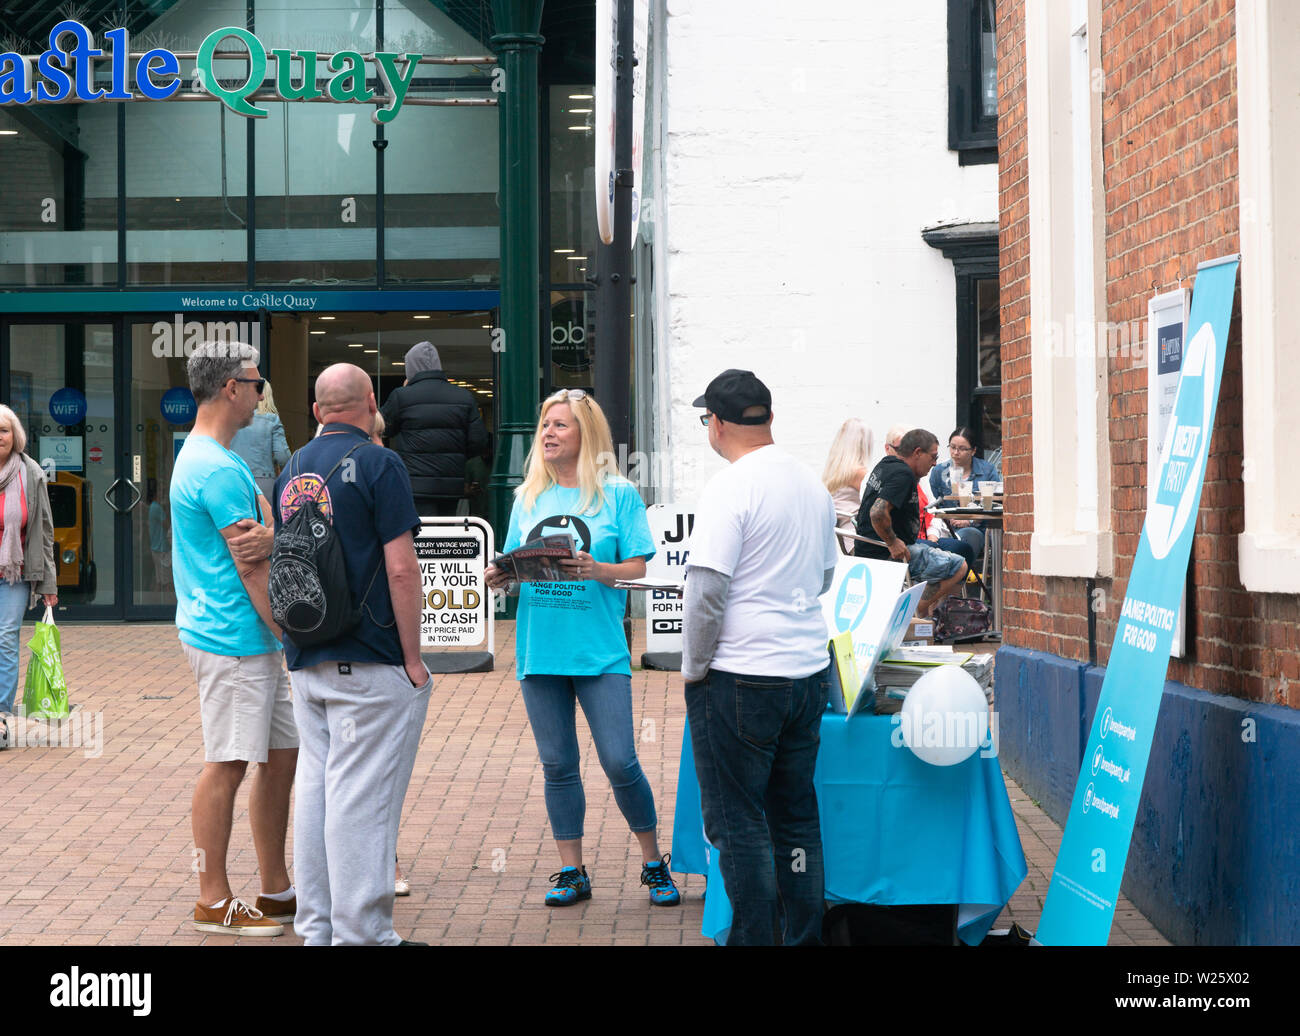 Banbury, Oxfordshire, July 6th 2019 Members of the Brexit Party (UK) hand out copies of their newspaper 'The Brexiteer' at stalls in the Market Square, Banbury. This marks part of a 'National Campaign Day' on which The Brexit Party state they aimed to set up stalls in each county in the UK. Bridget Catterall Alamy Live News Stock Photo